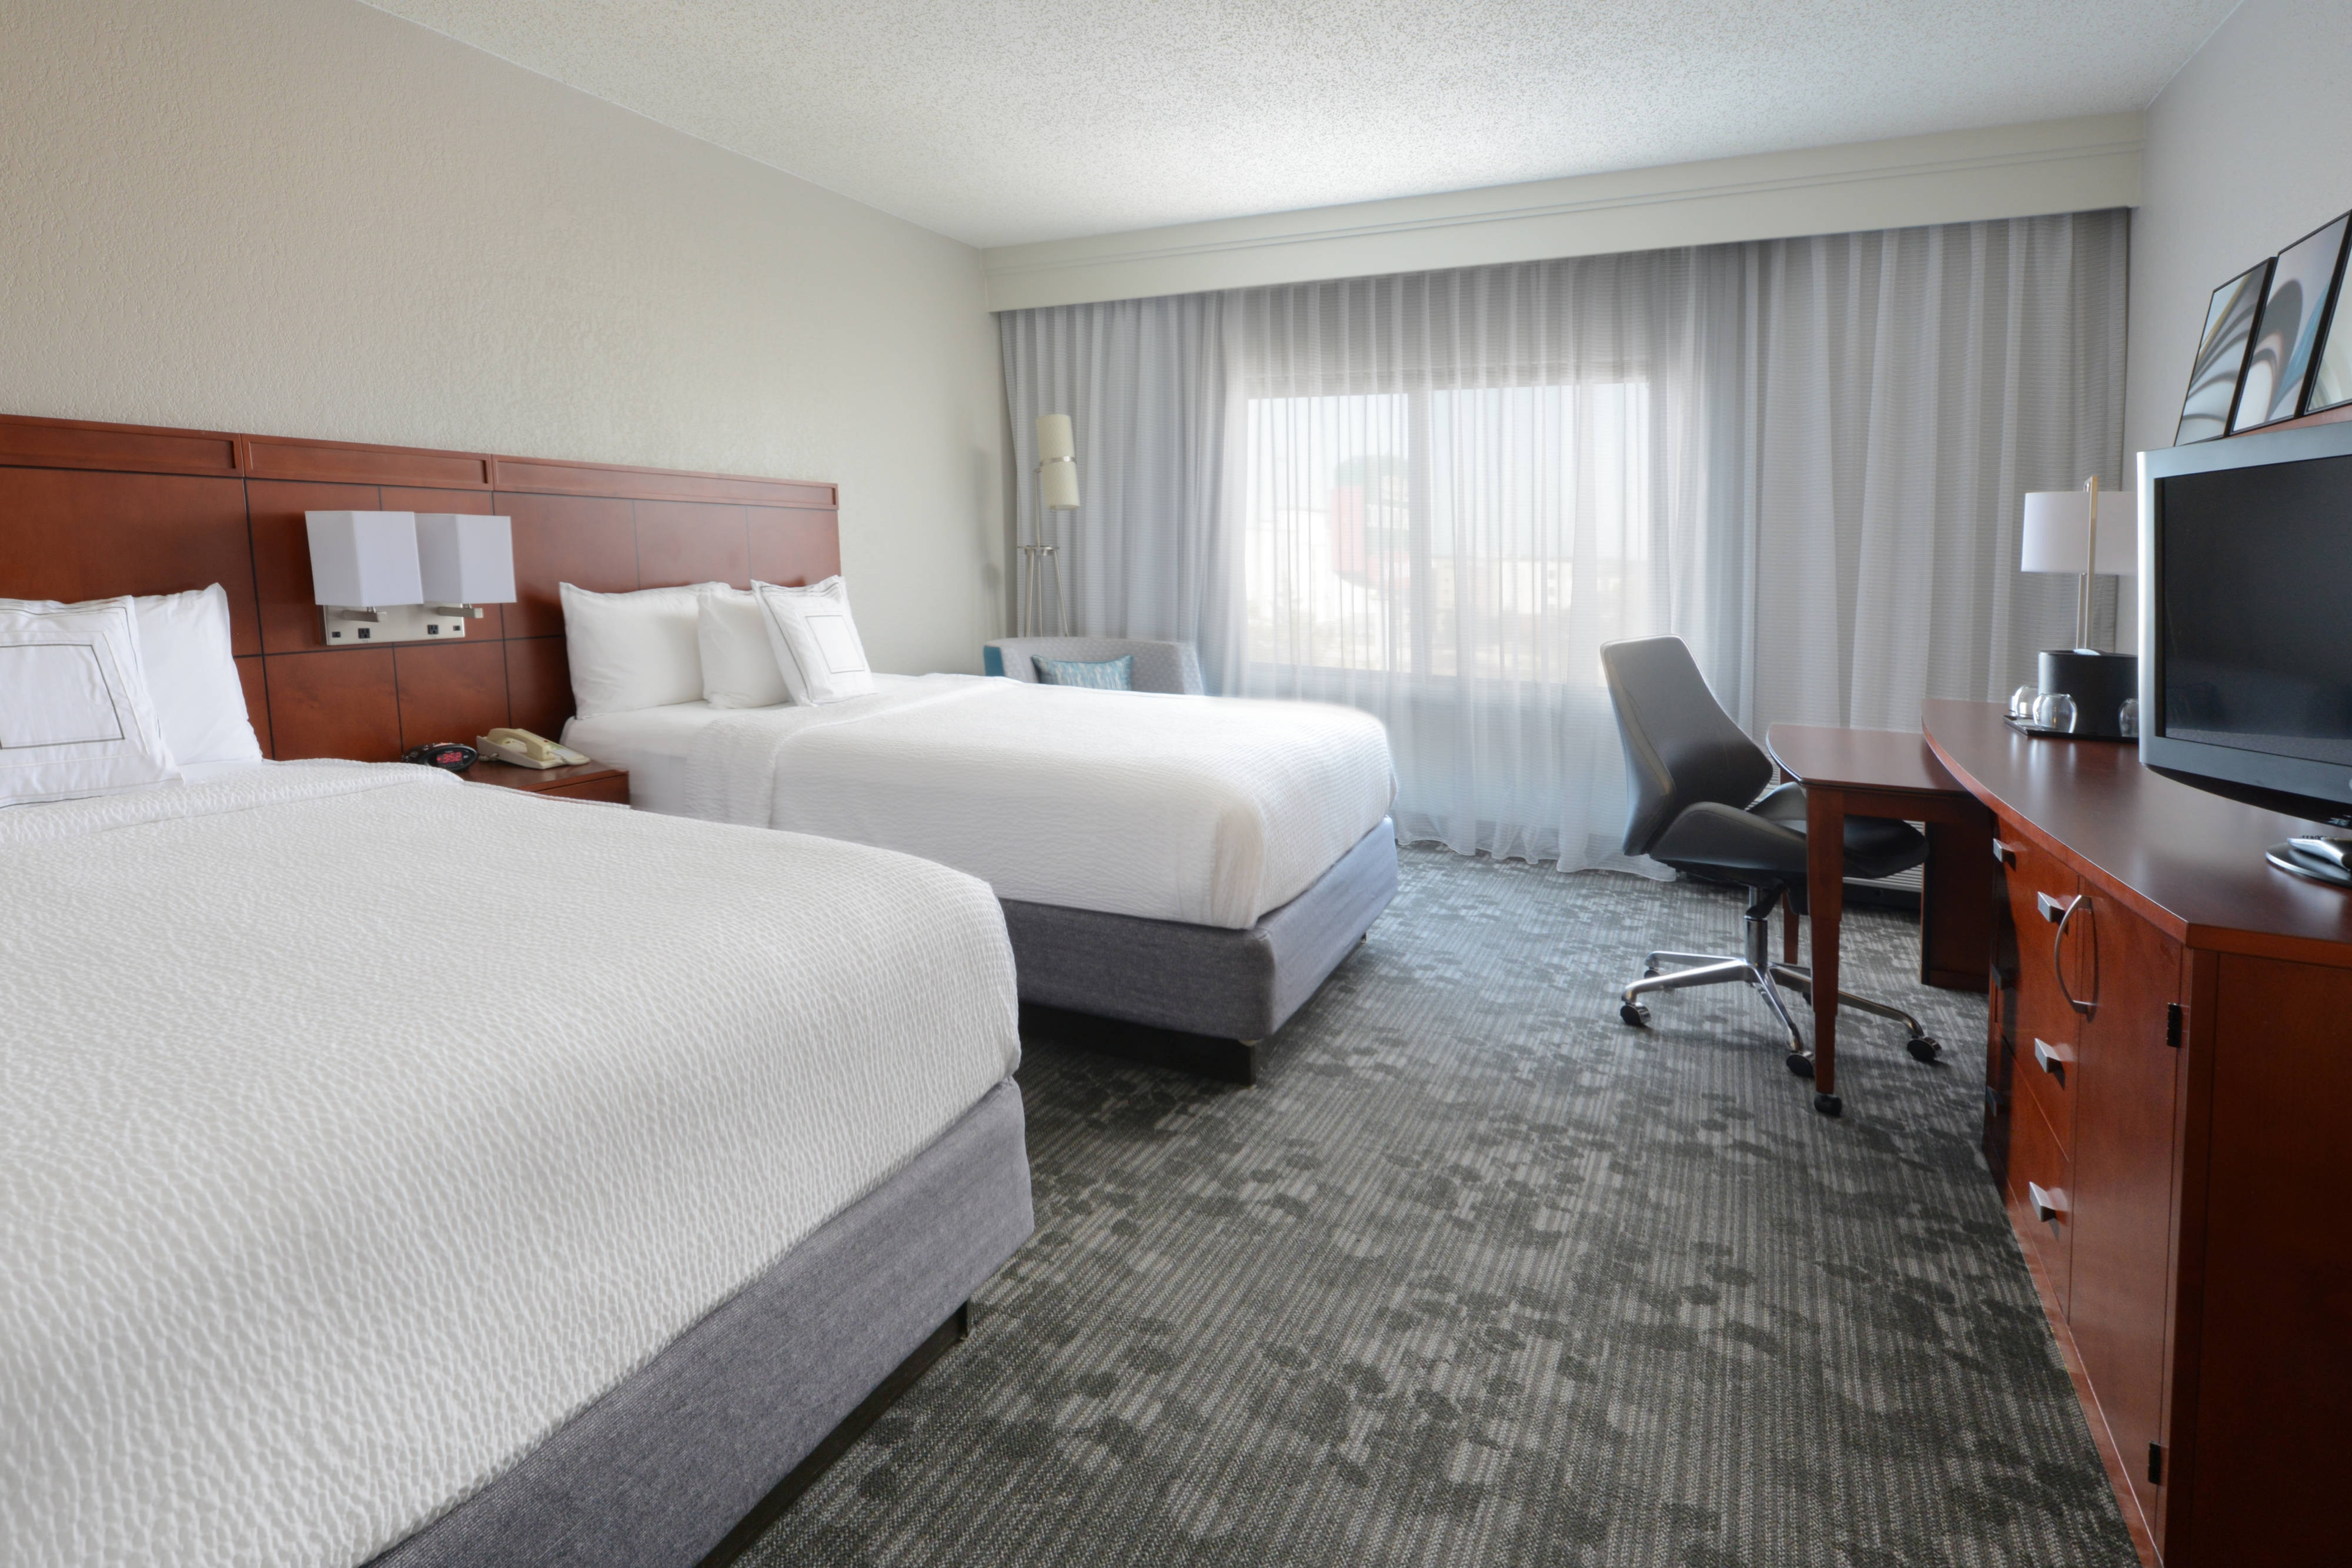 Dallas Hotels near SMU and Highland Park | Courtyard Dallas Central ...